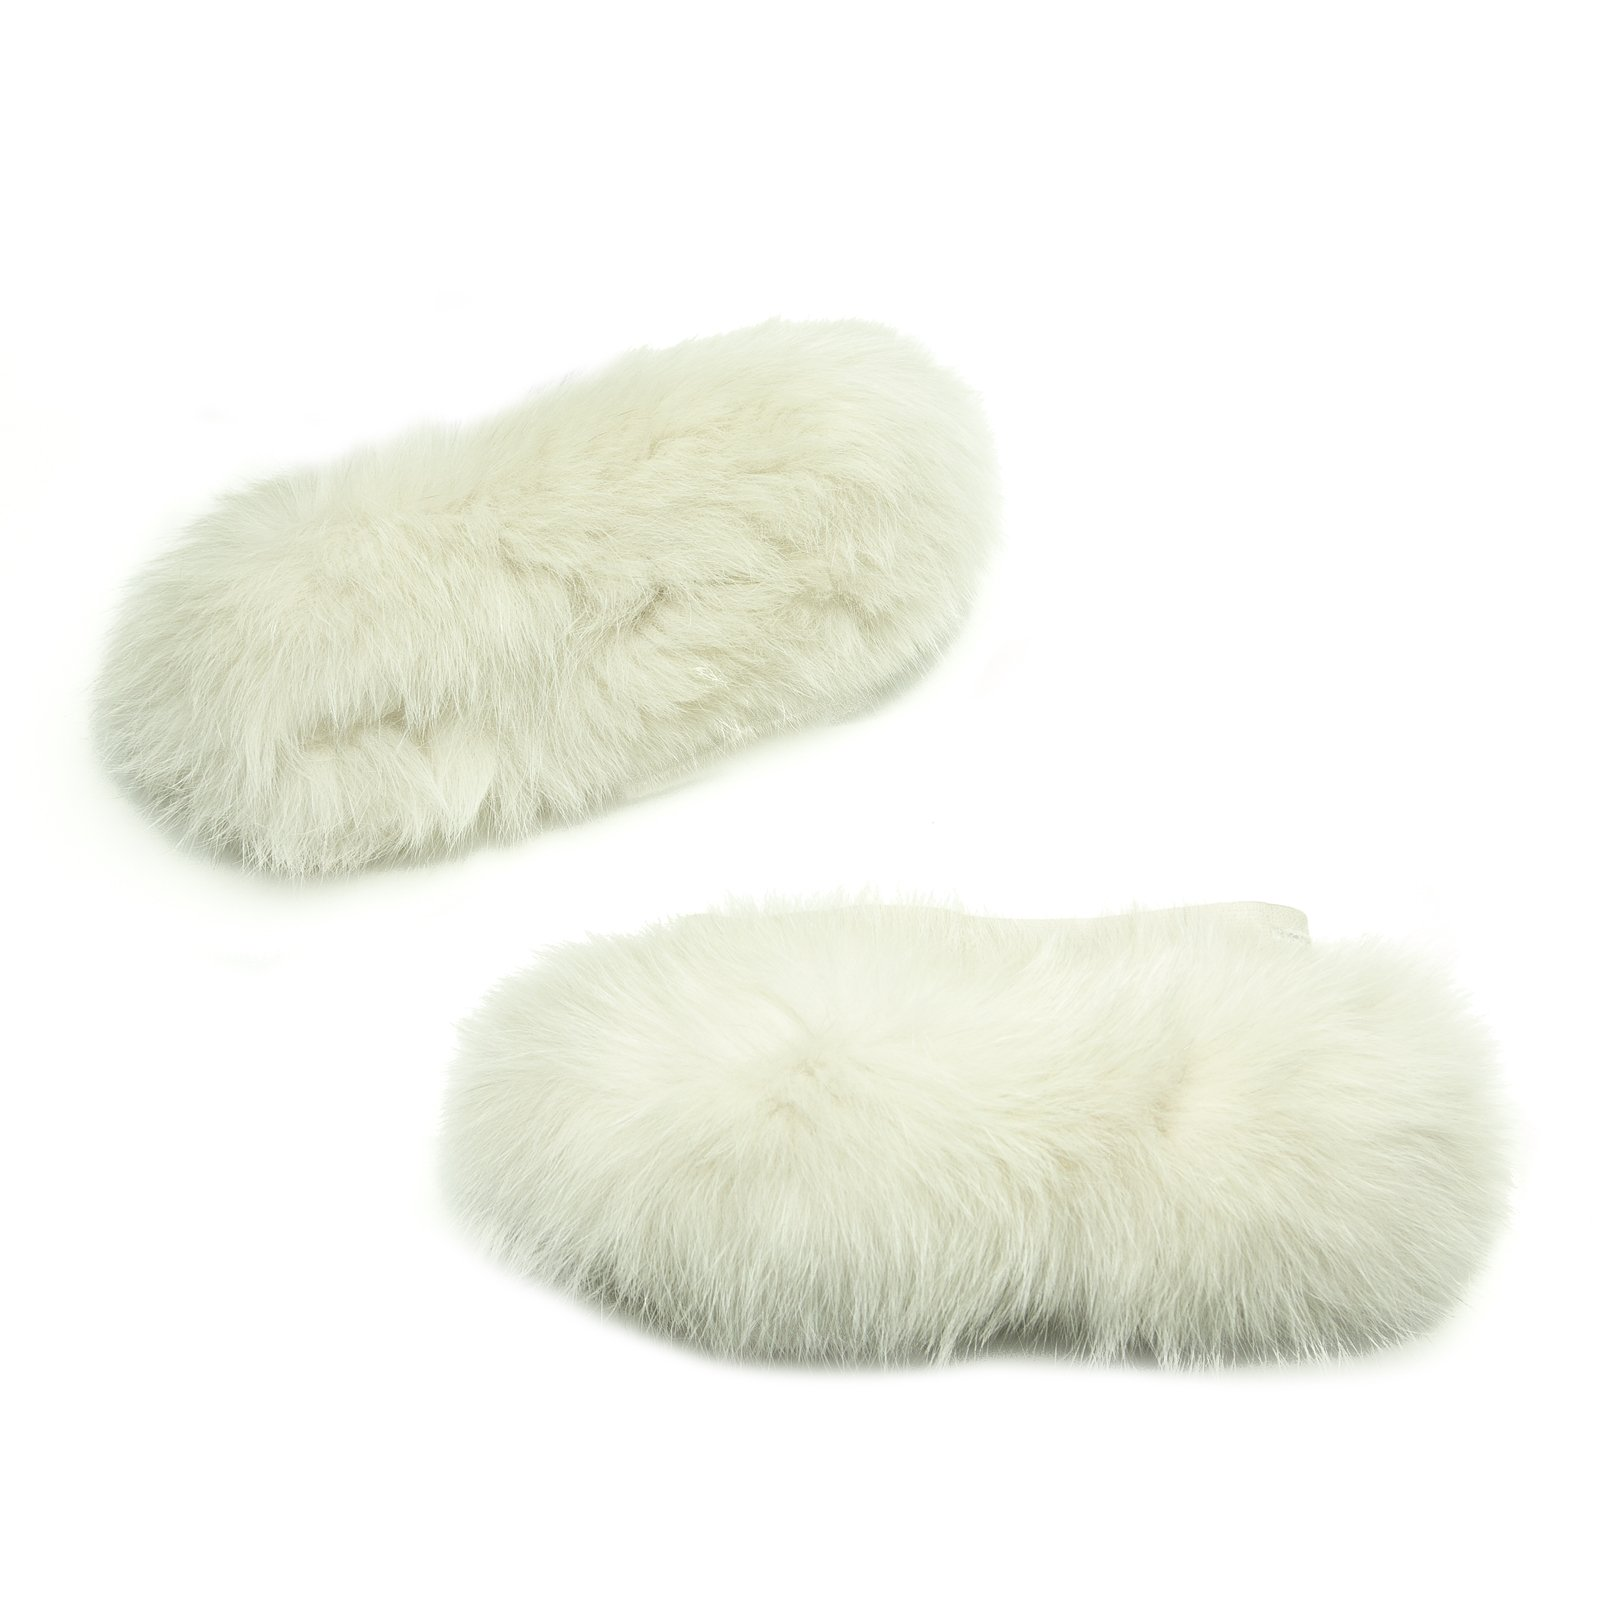 'S Max Mara Women's Pechino Fox Fur Cube Collection Cuffs One Size Ice by MaxMara